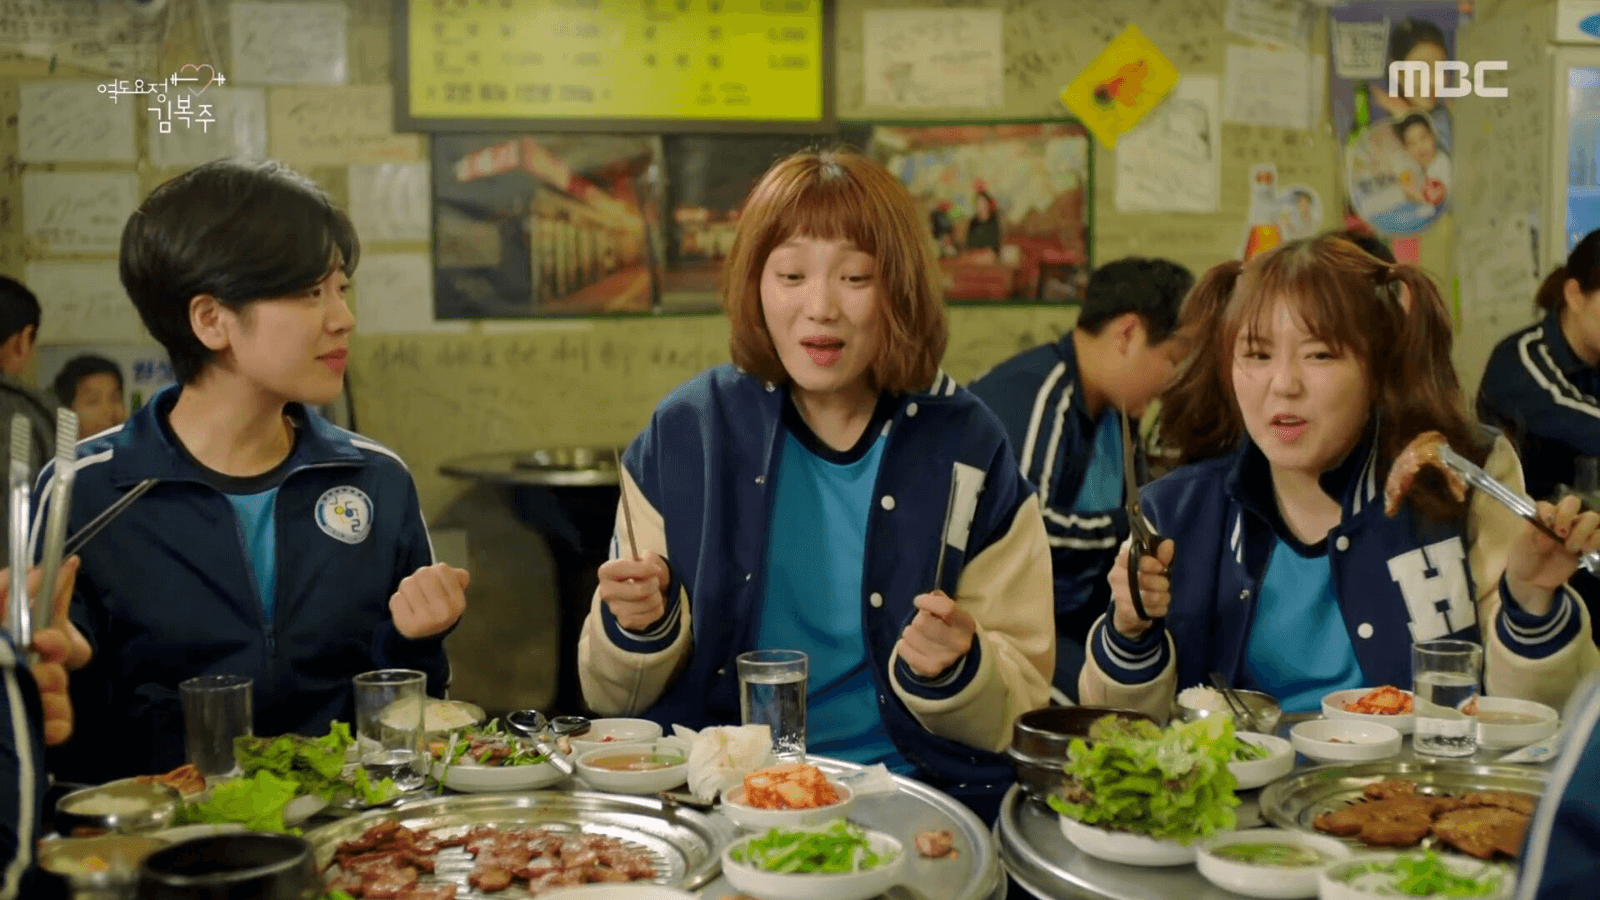 Kdrama fried chicken lee seong kyeong